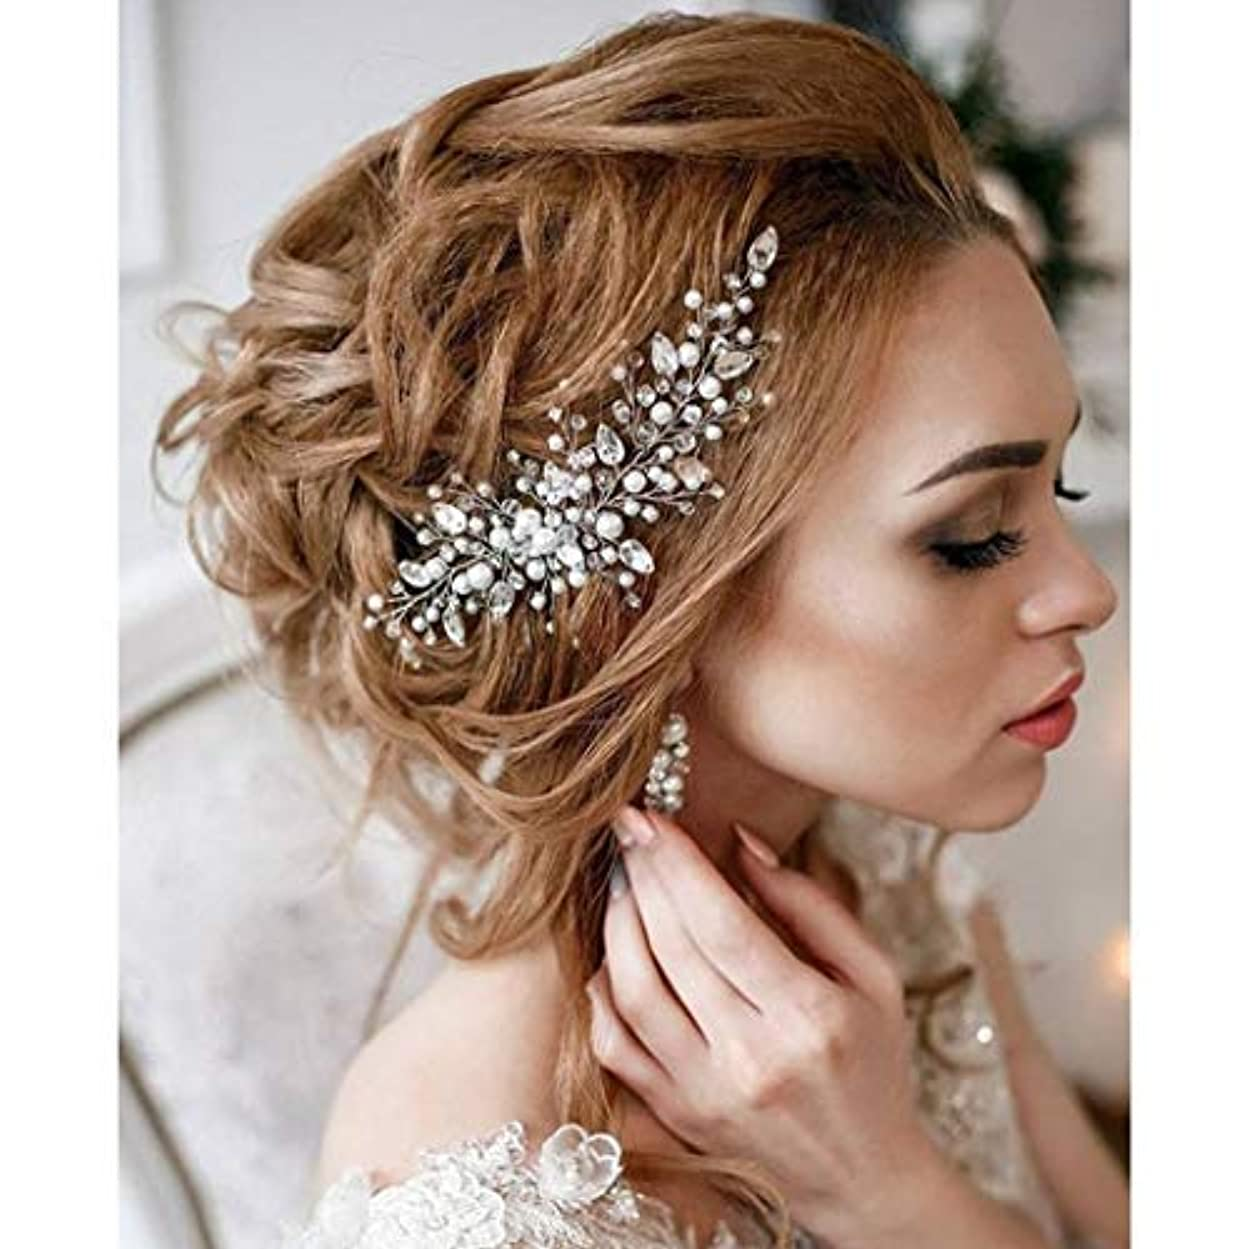 表向き出力ゲートAukmla Bride Wedding Hair Combs Bridal Hair Accessories Decorative for Brides and Bridesmaids [並行輸入品]